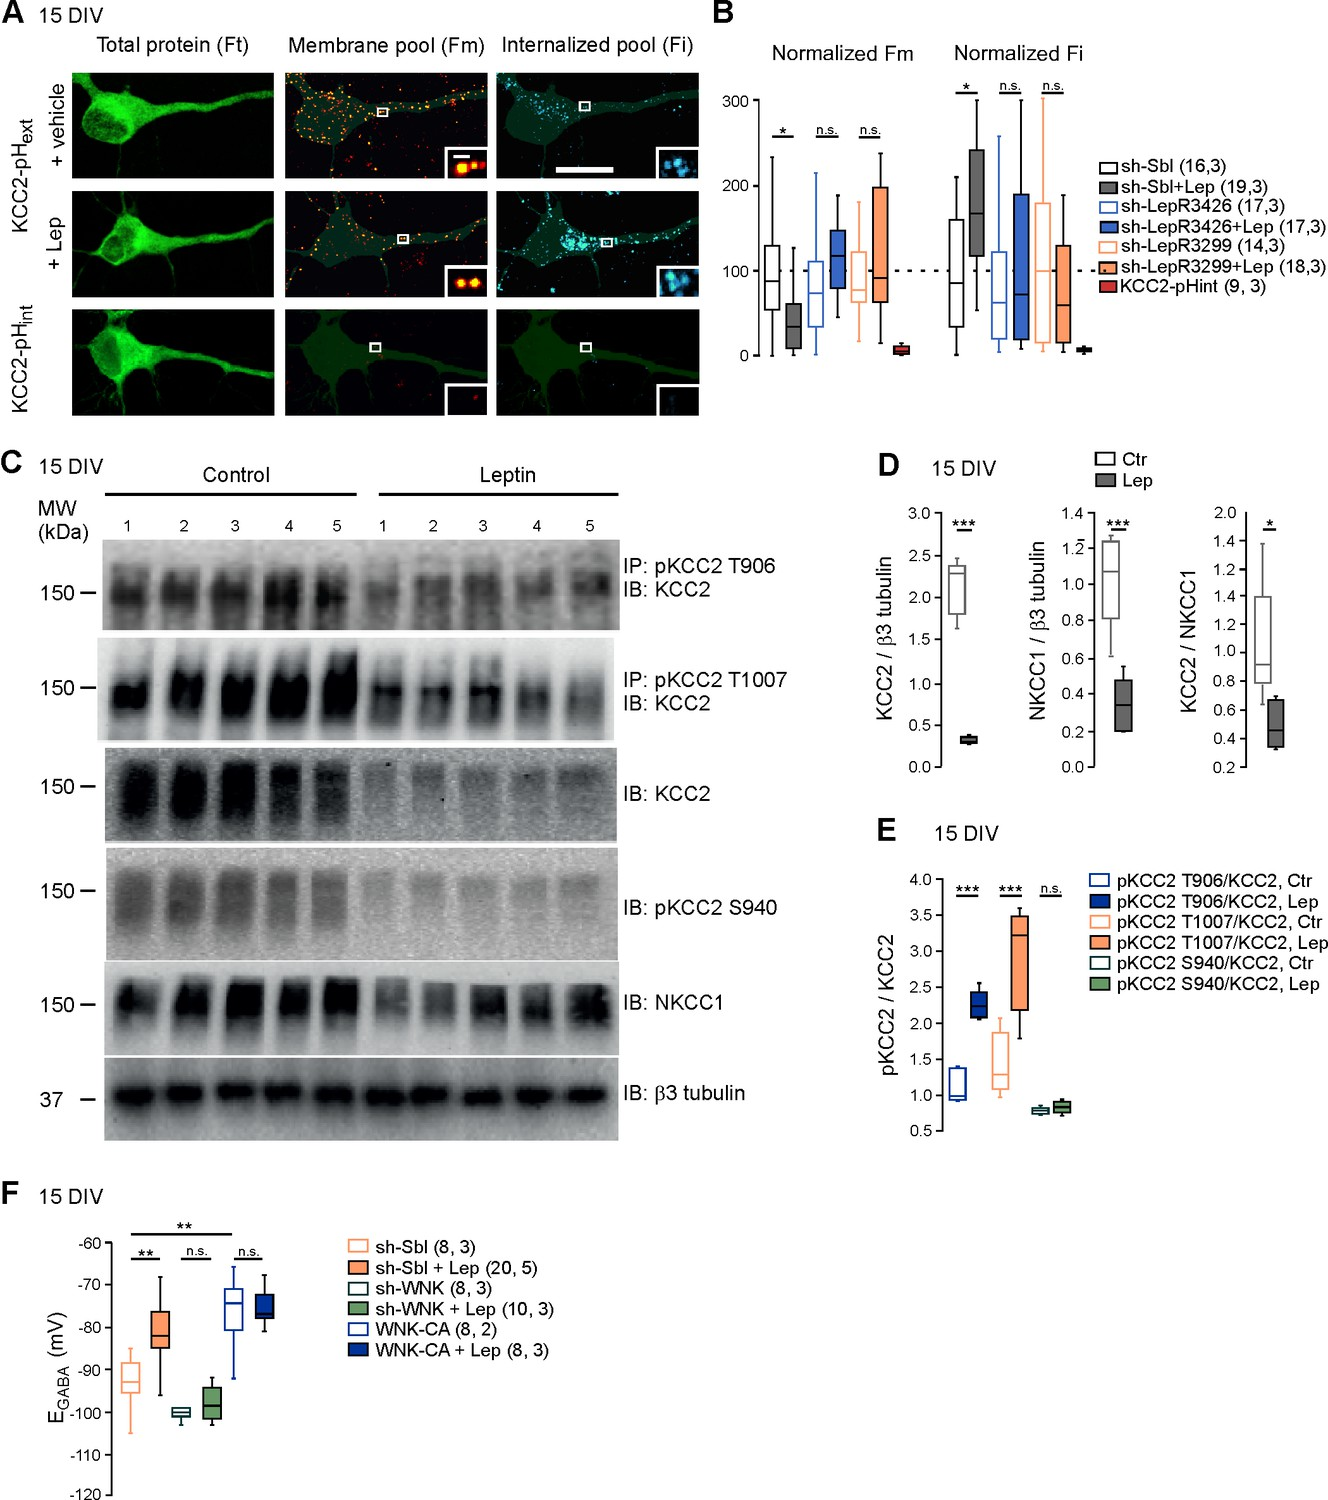 The Adipocyte Hormone Leptin Sets Emergence Of Hippocampal Wiring Diagram 50 Amp For Rv Also Dish Hopper Reduces Plasma Membrane Expression Kcc2 And Modulates Its Phosphorylation State In Cultured Neurons